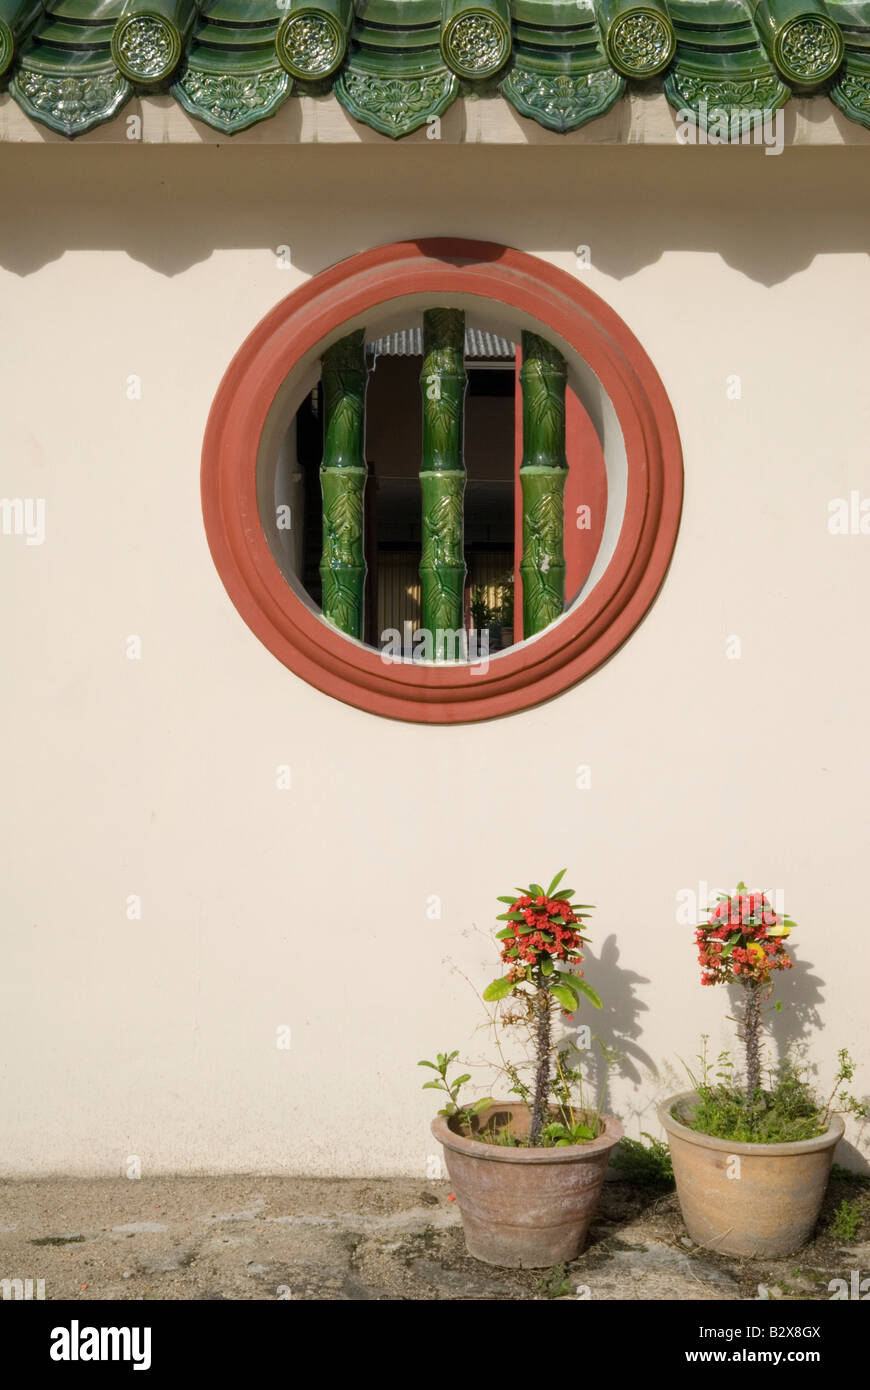 Courtyard pot plants and bamboo design round window in a wall at the ancestral straits Chinese clan temple, Cheah - Stock Image